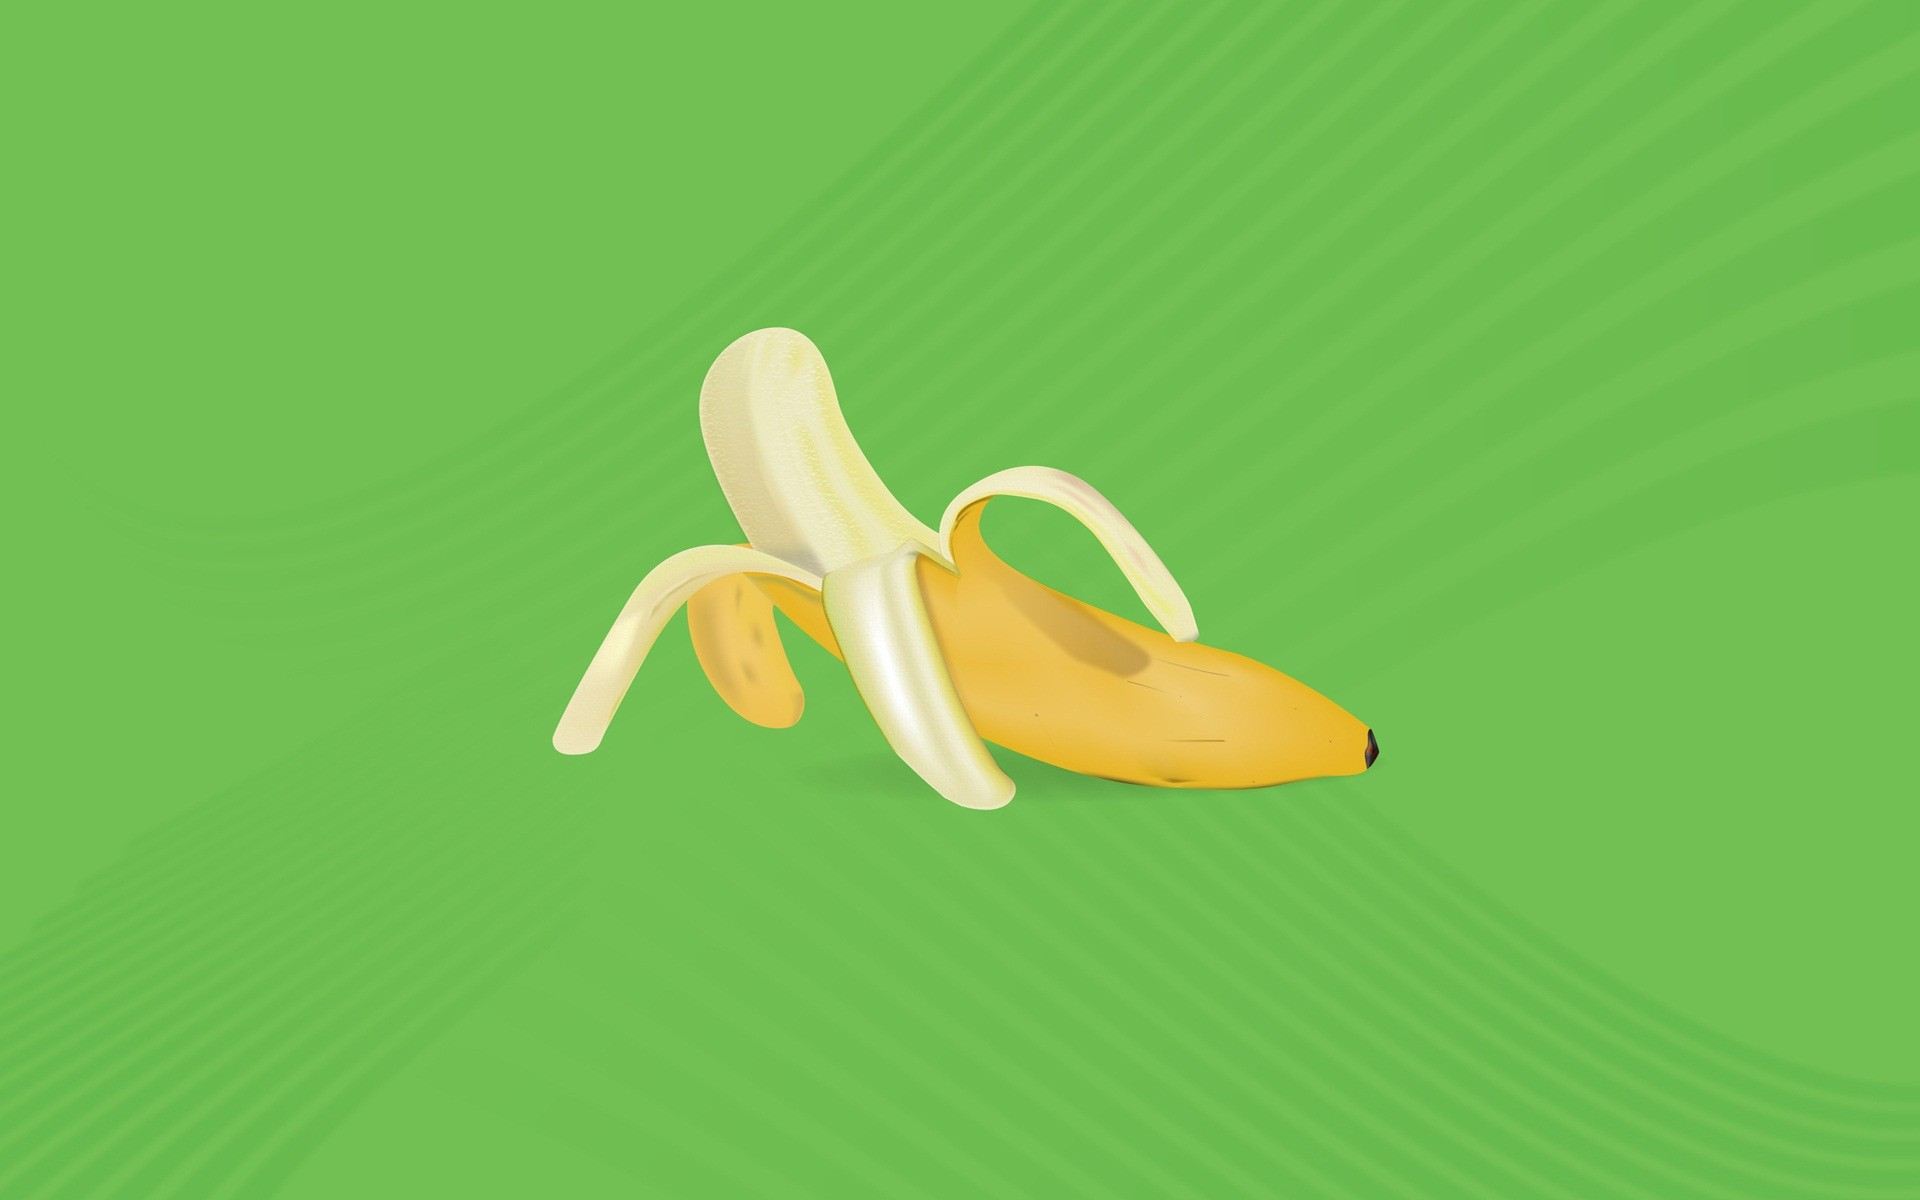 1920x1200 Banana Tumblr Wallpaper Background Download Holographic